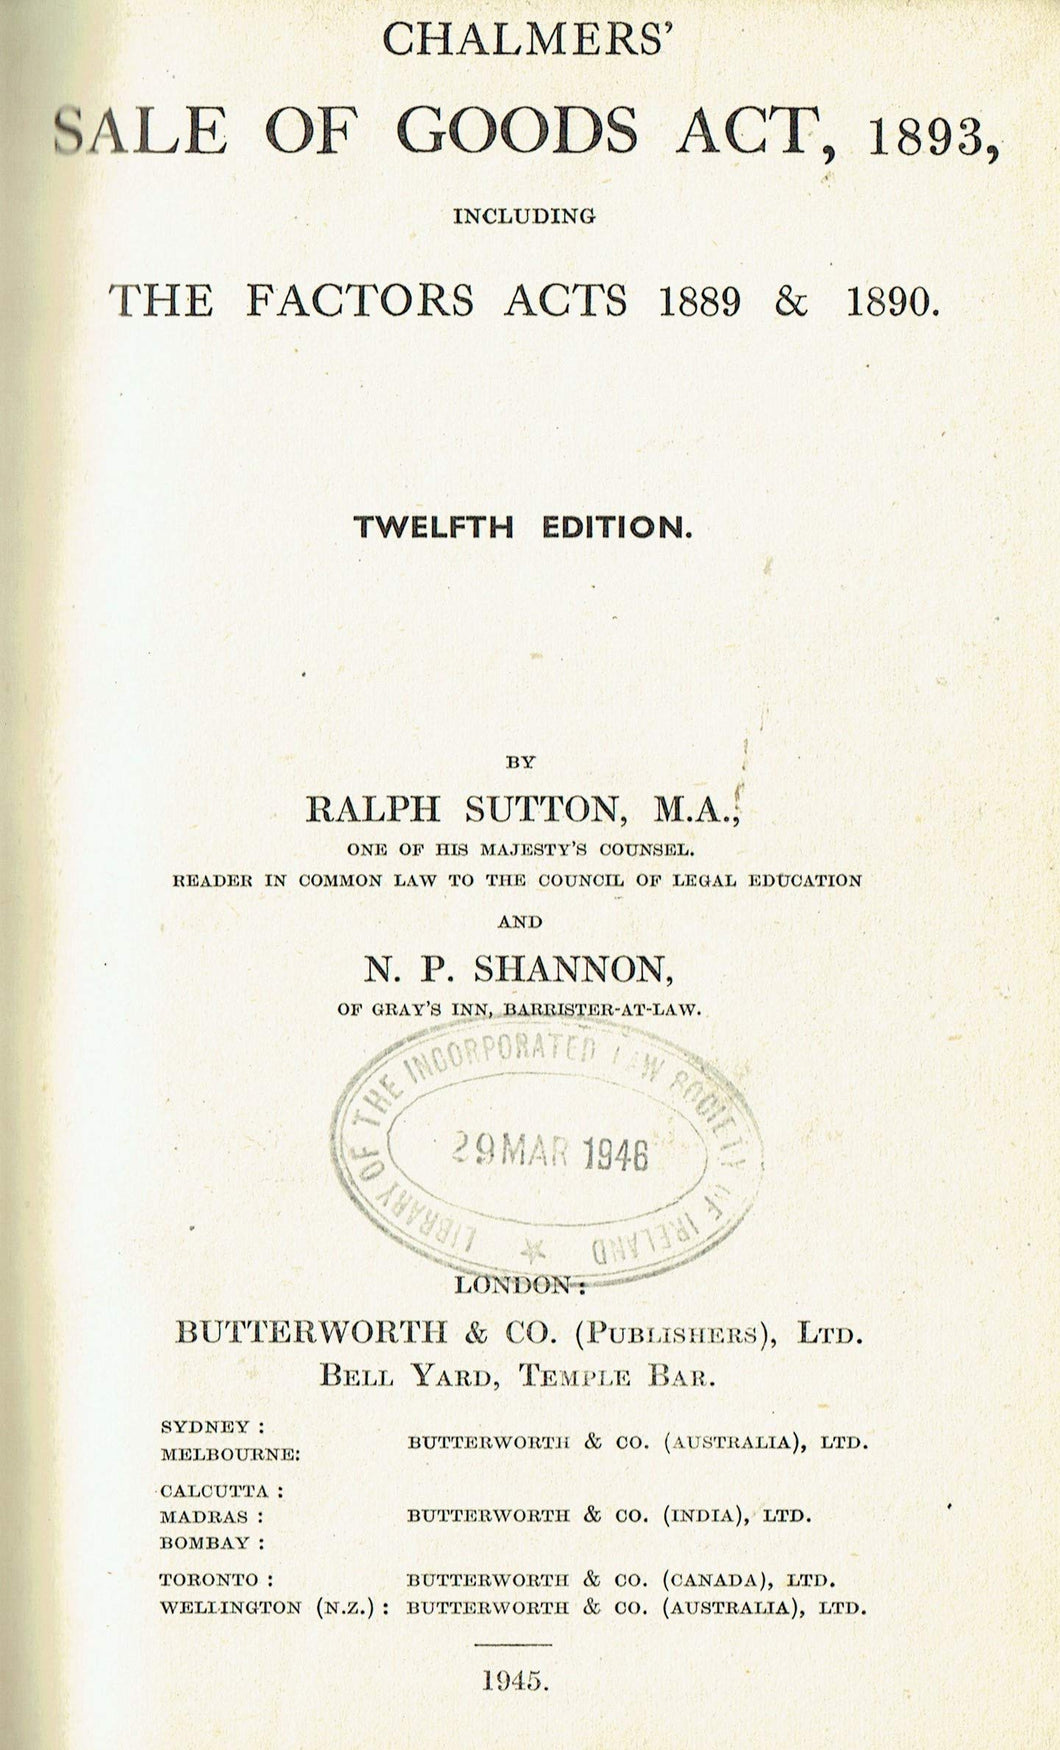 Chalmers' Sale of Goods Act, 1893, including the Factors Acts 1889 and 1980 - Twelfth Edition (12th Edition)